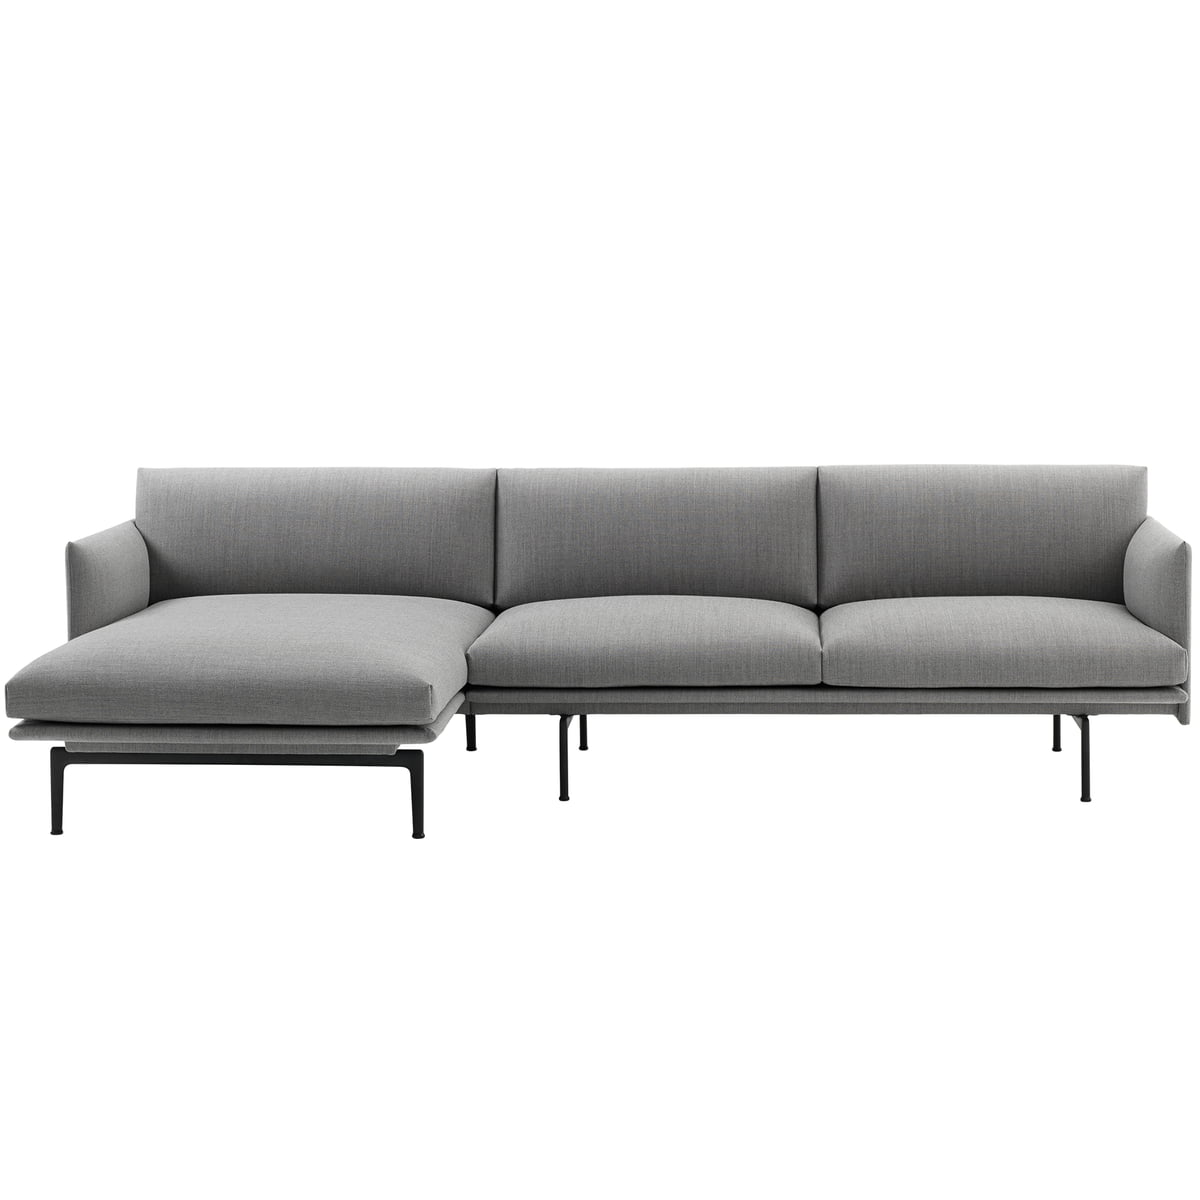 Muuto outline 3er ecksofa links grau fiord 151 for Ecksofa grau klein